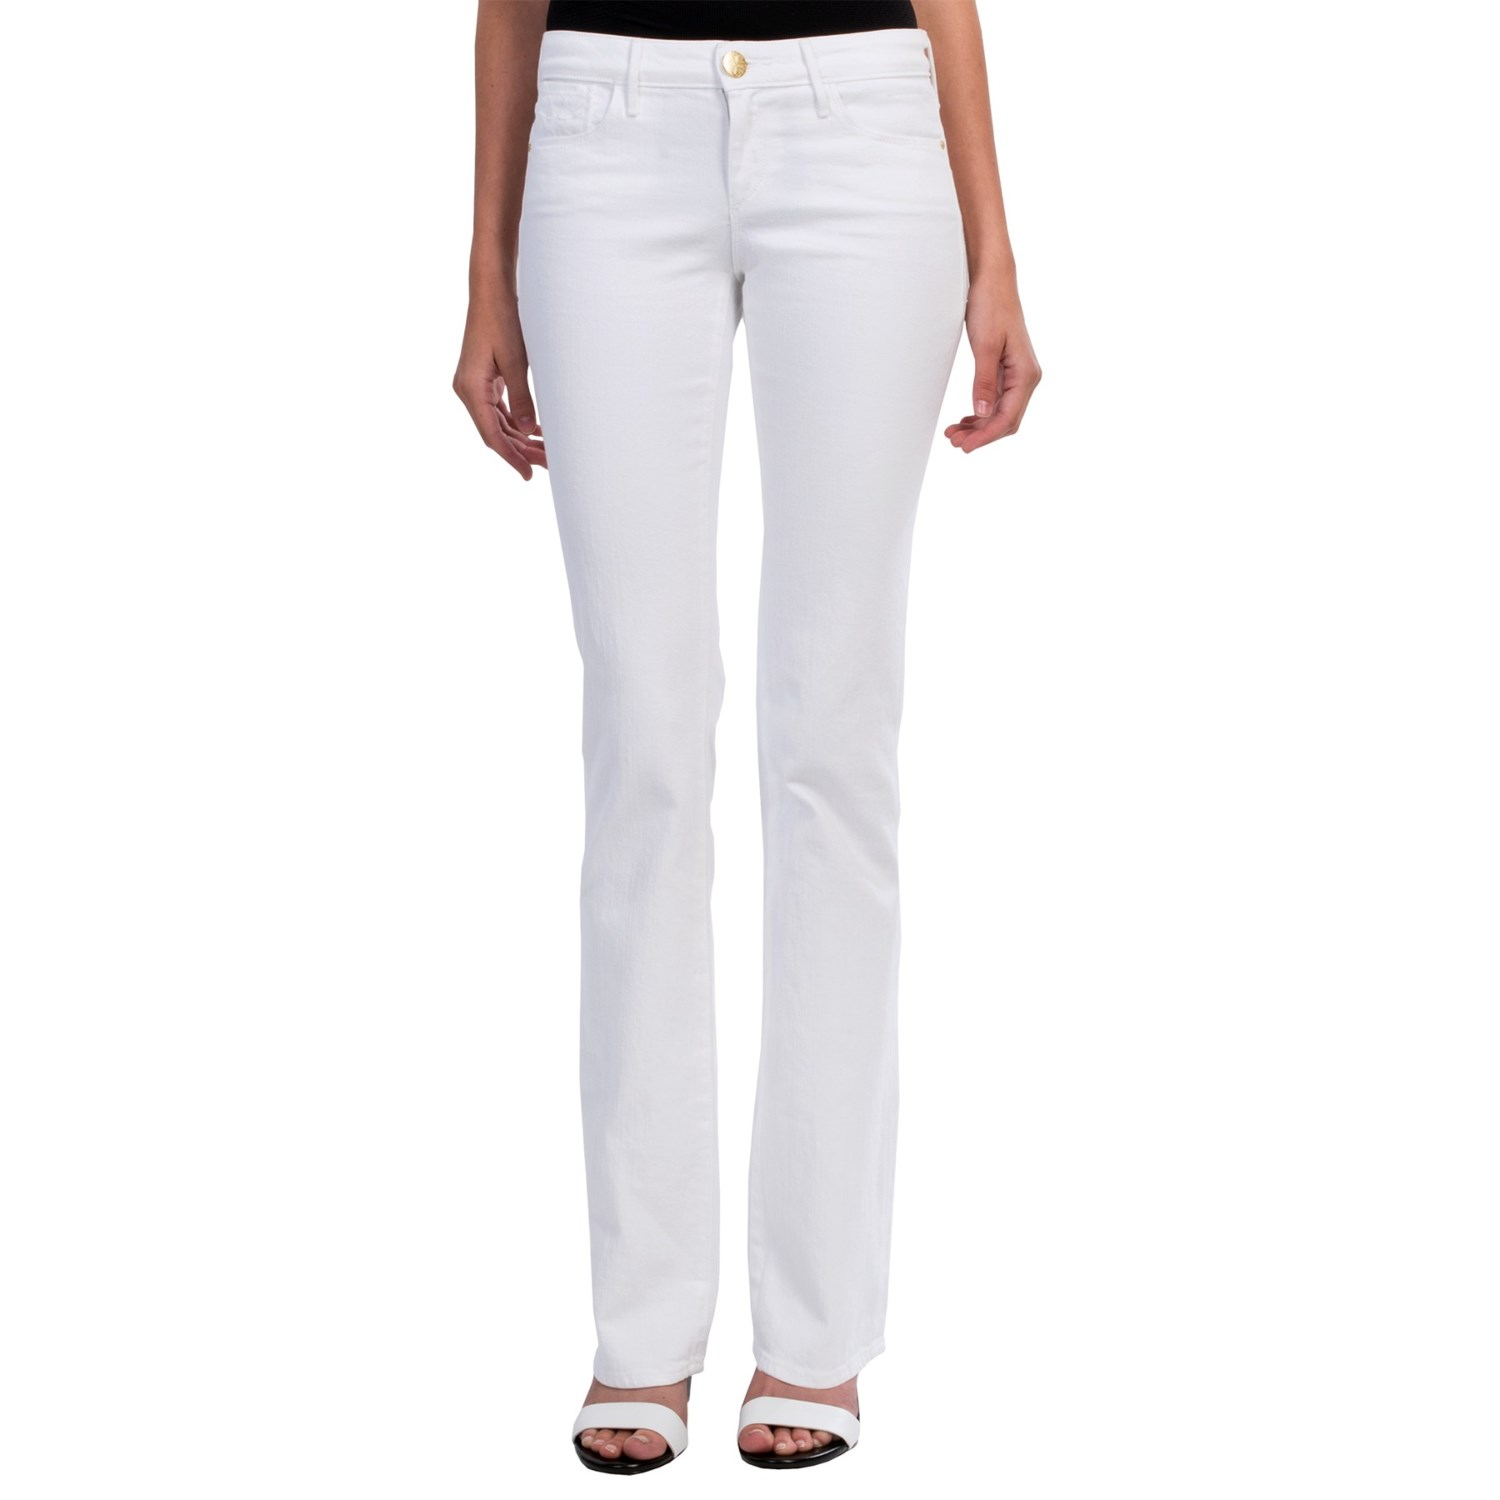 New Colored Pants For Women Colored Pants For Women  Adi Pant